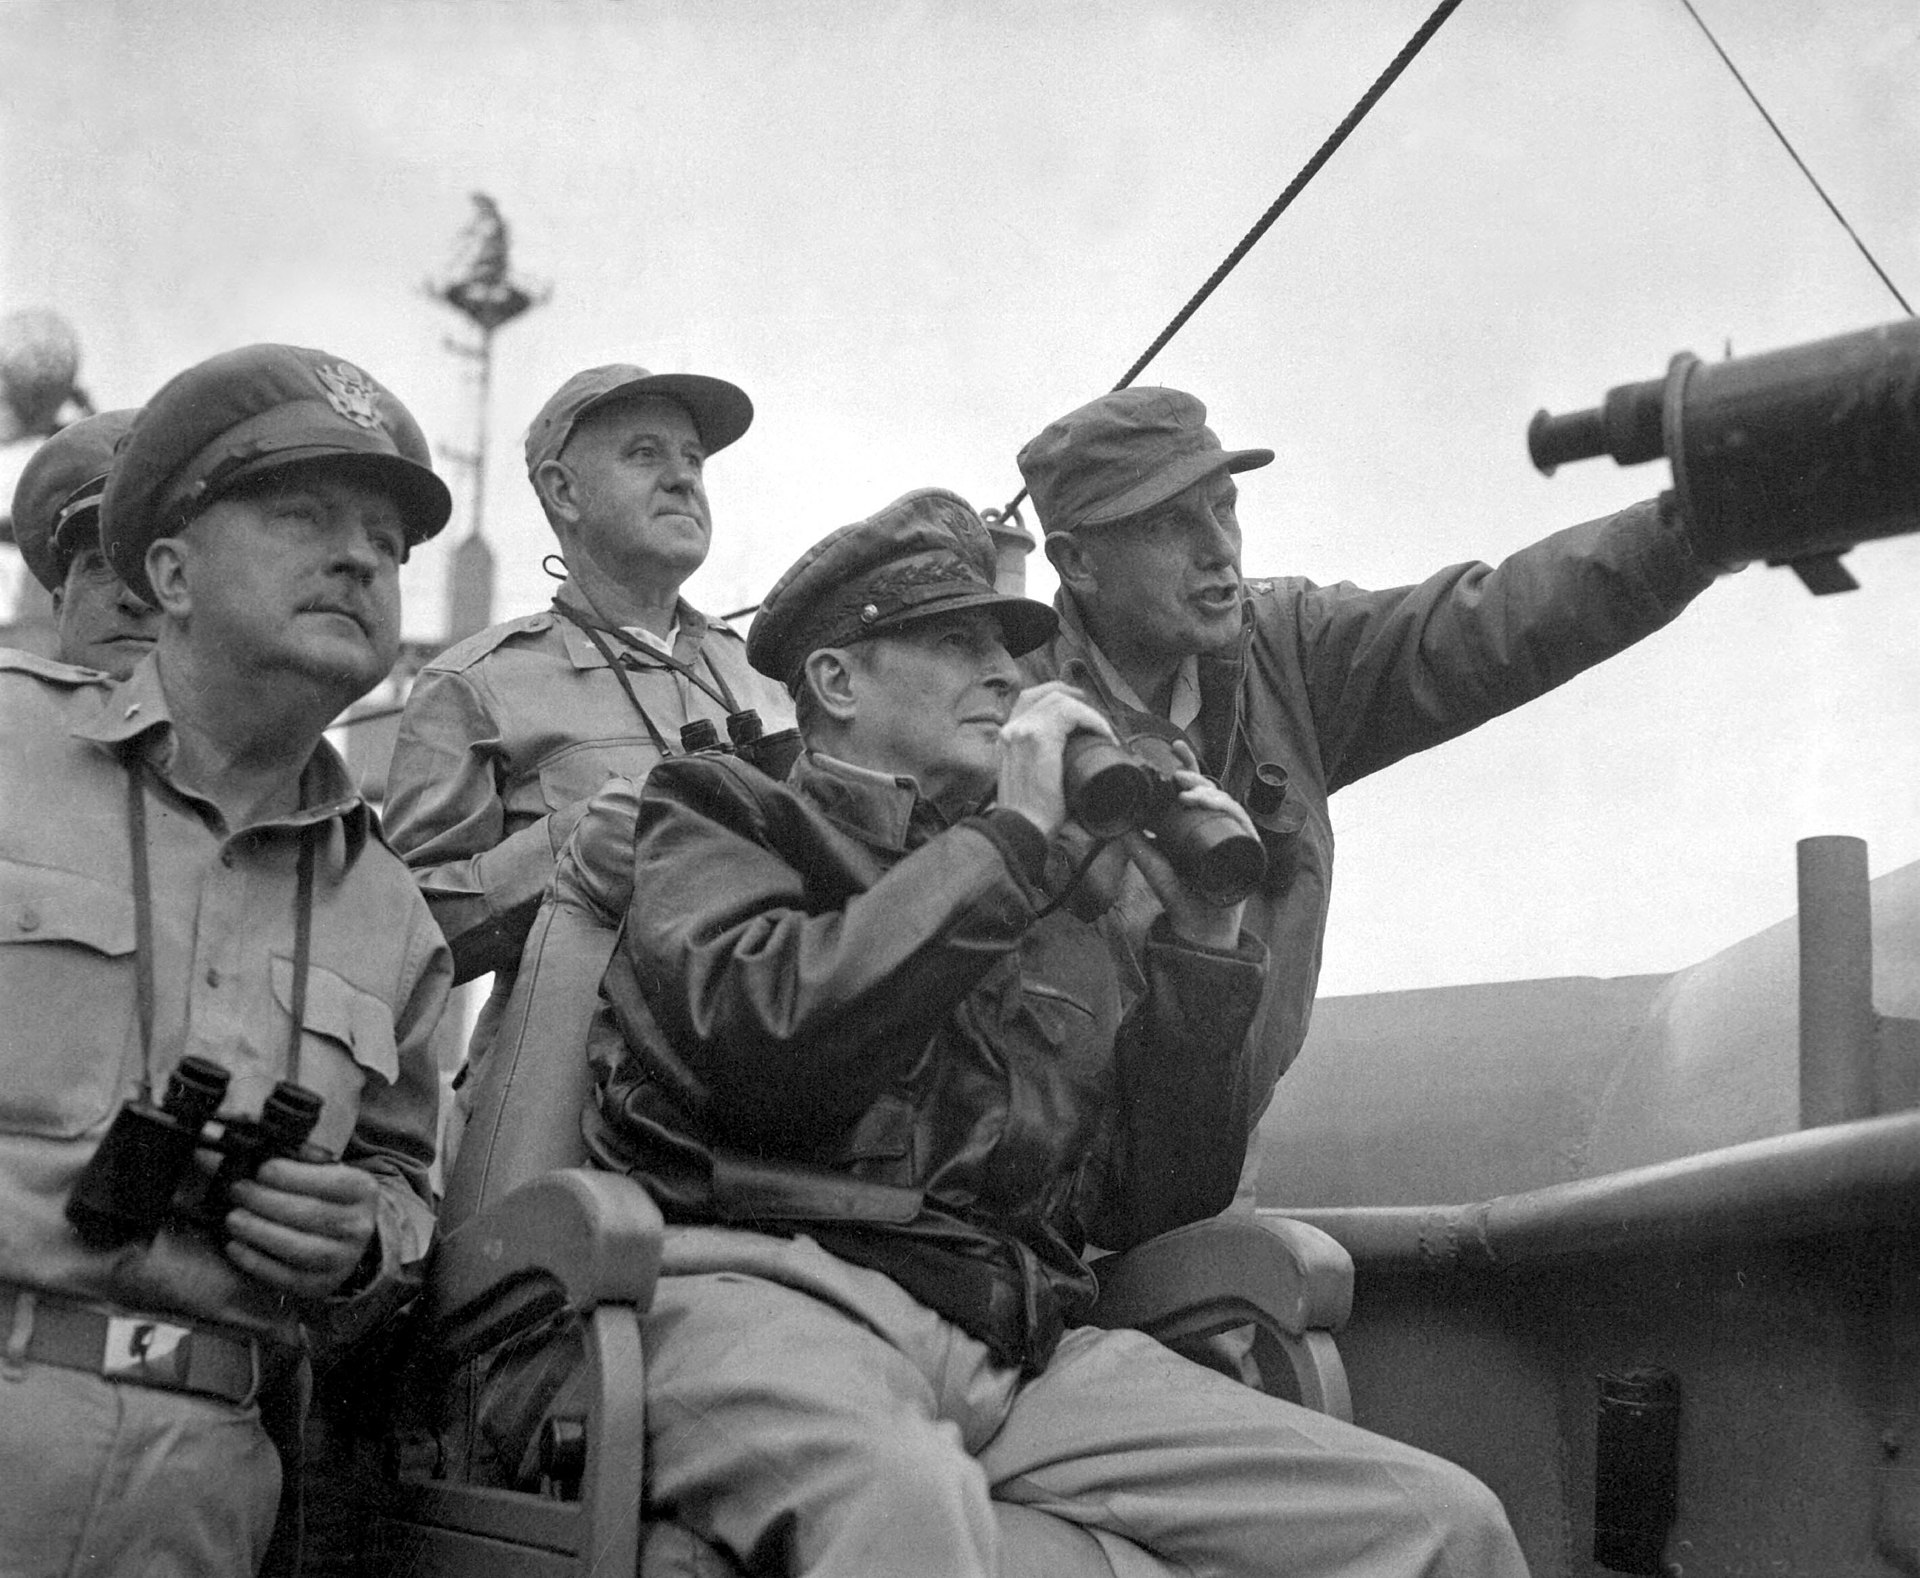 Brigadier General Courtney Whitney,General Douglas MacArthur, and Major General Edward Almond observe the shelling of Incheon from the USS Mount McKinley on 15 September 1950. (U.S. Army Photo/Wikimedia)